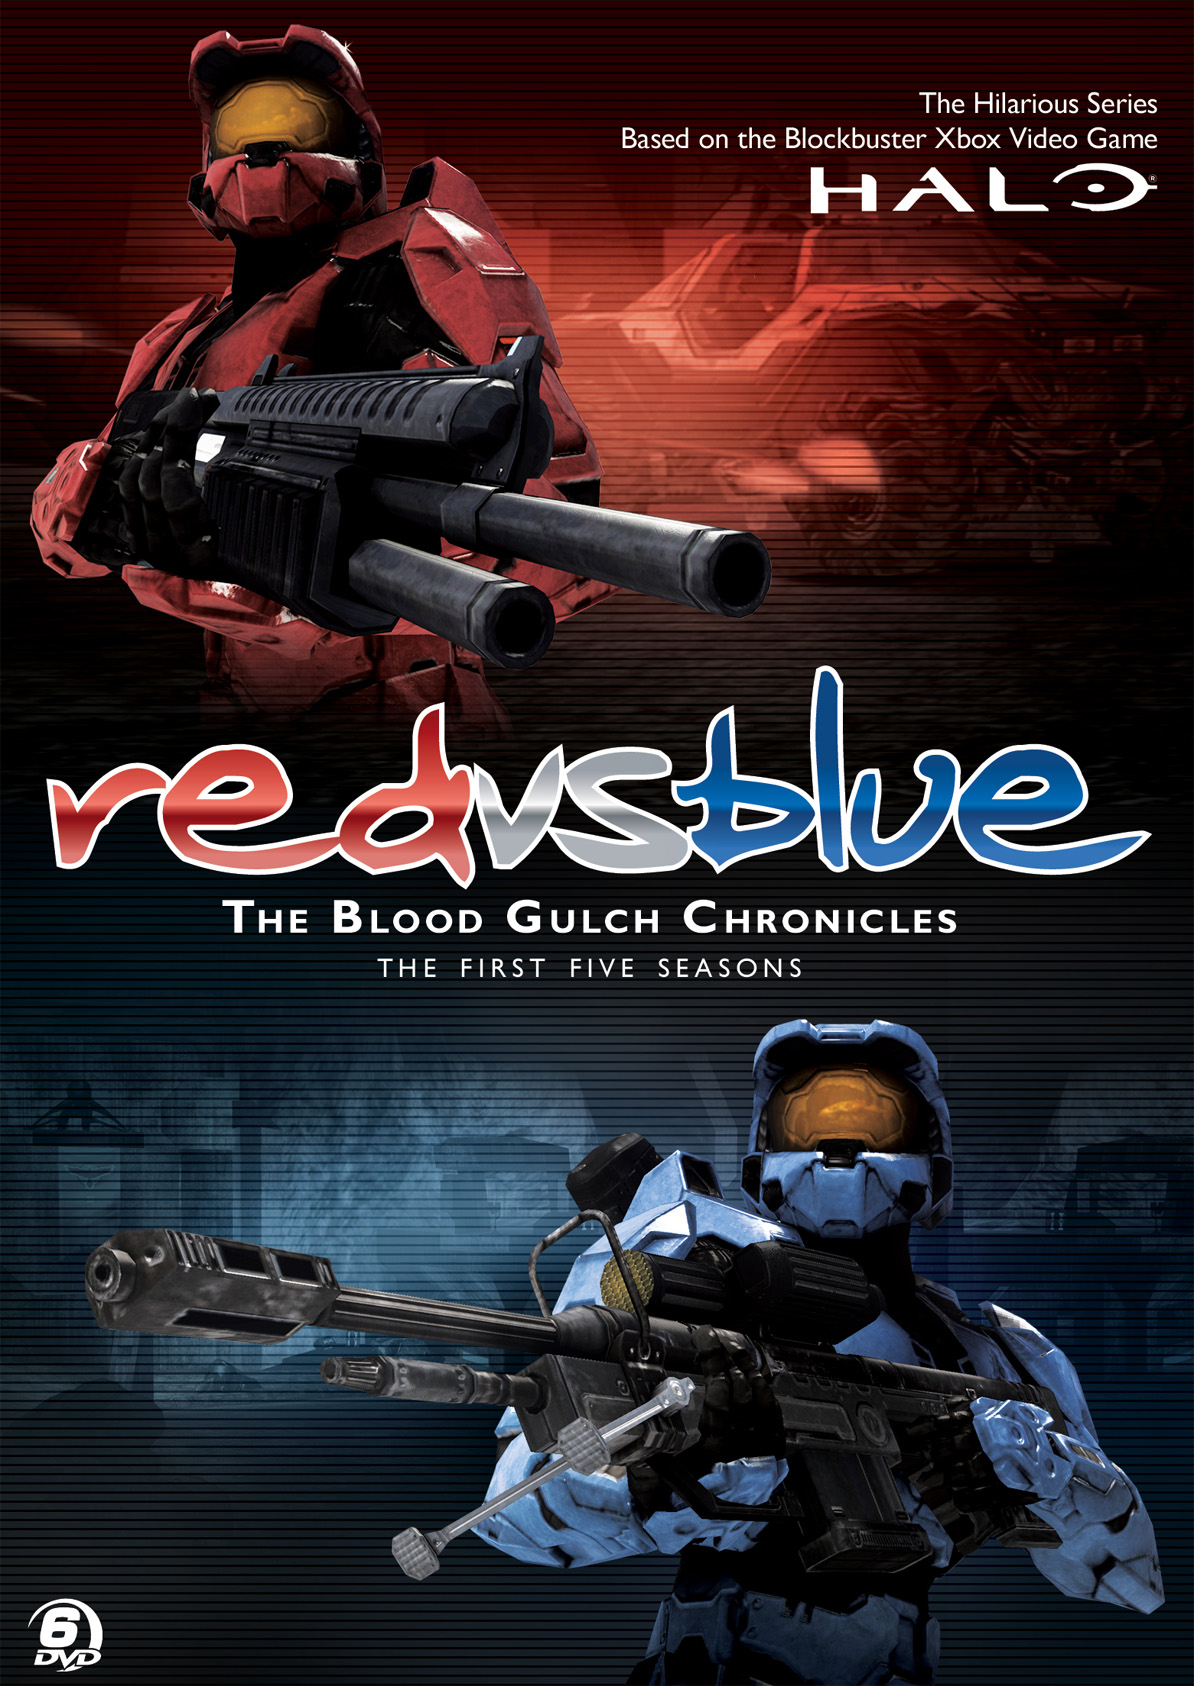 New Video Sewing Tutorial Series: Red Vs. Blue: The Blood Gulch Chronicles: The First Five